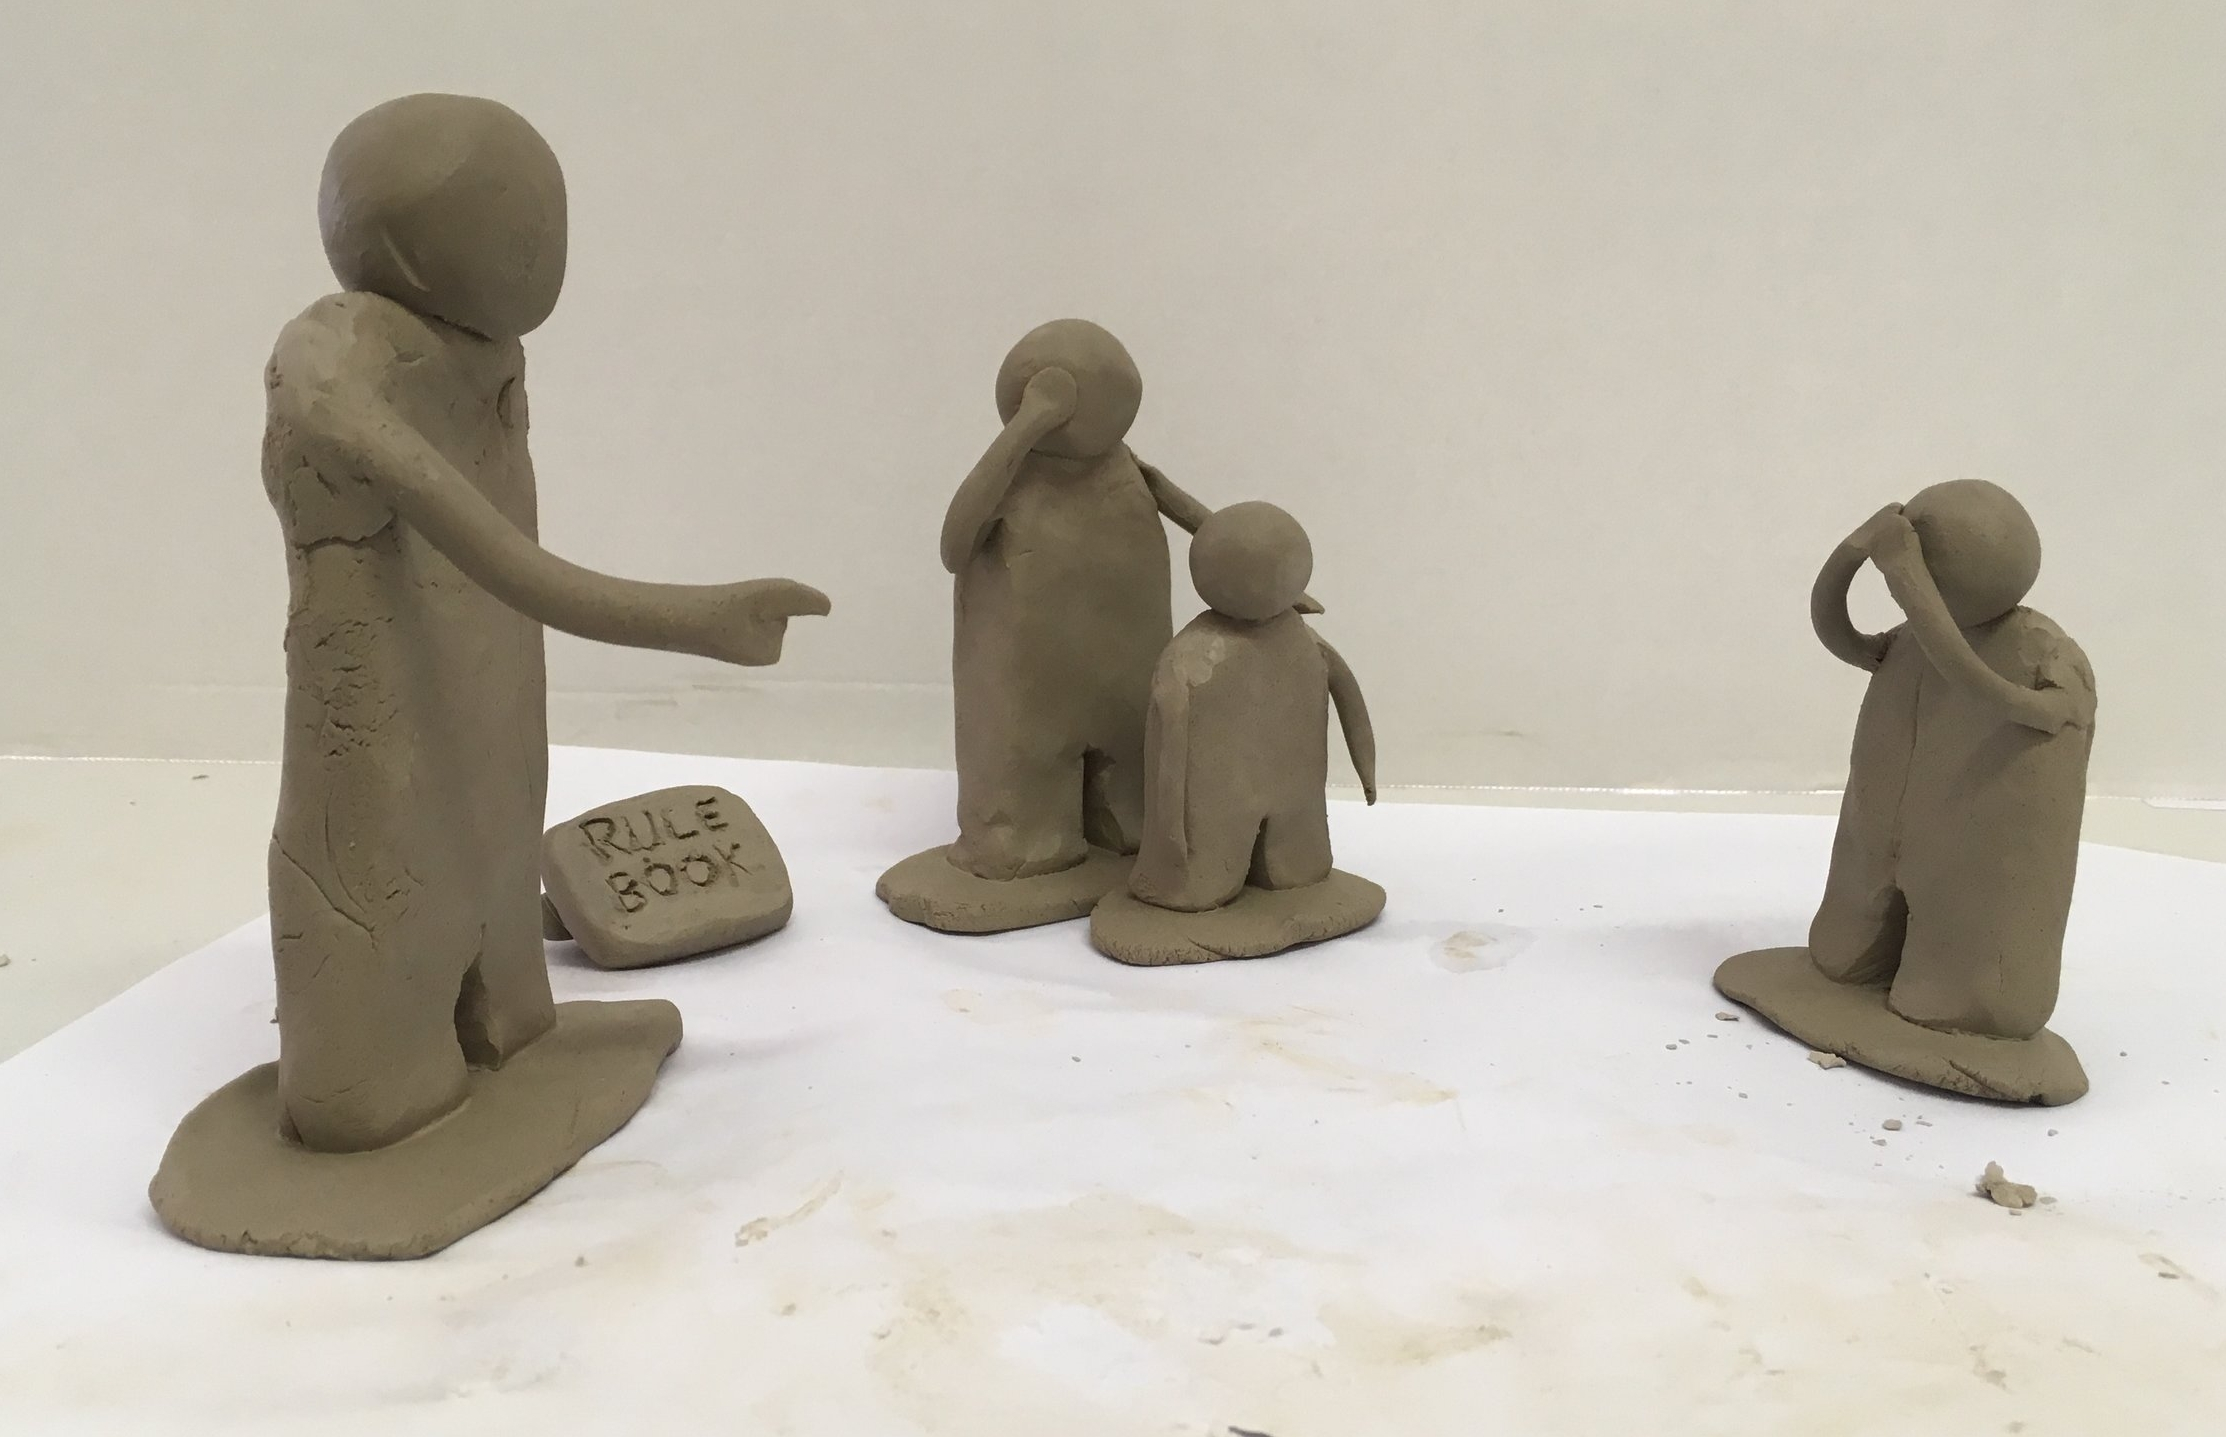 A clay-work of a family memory